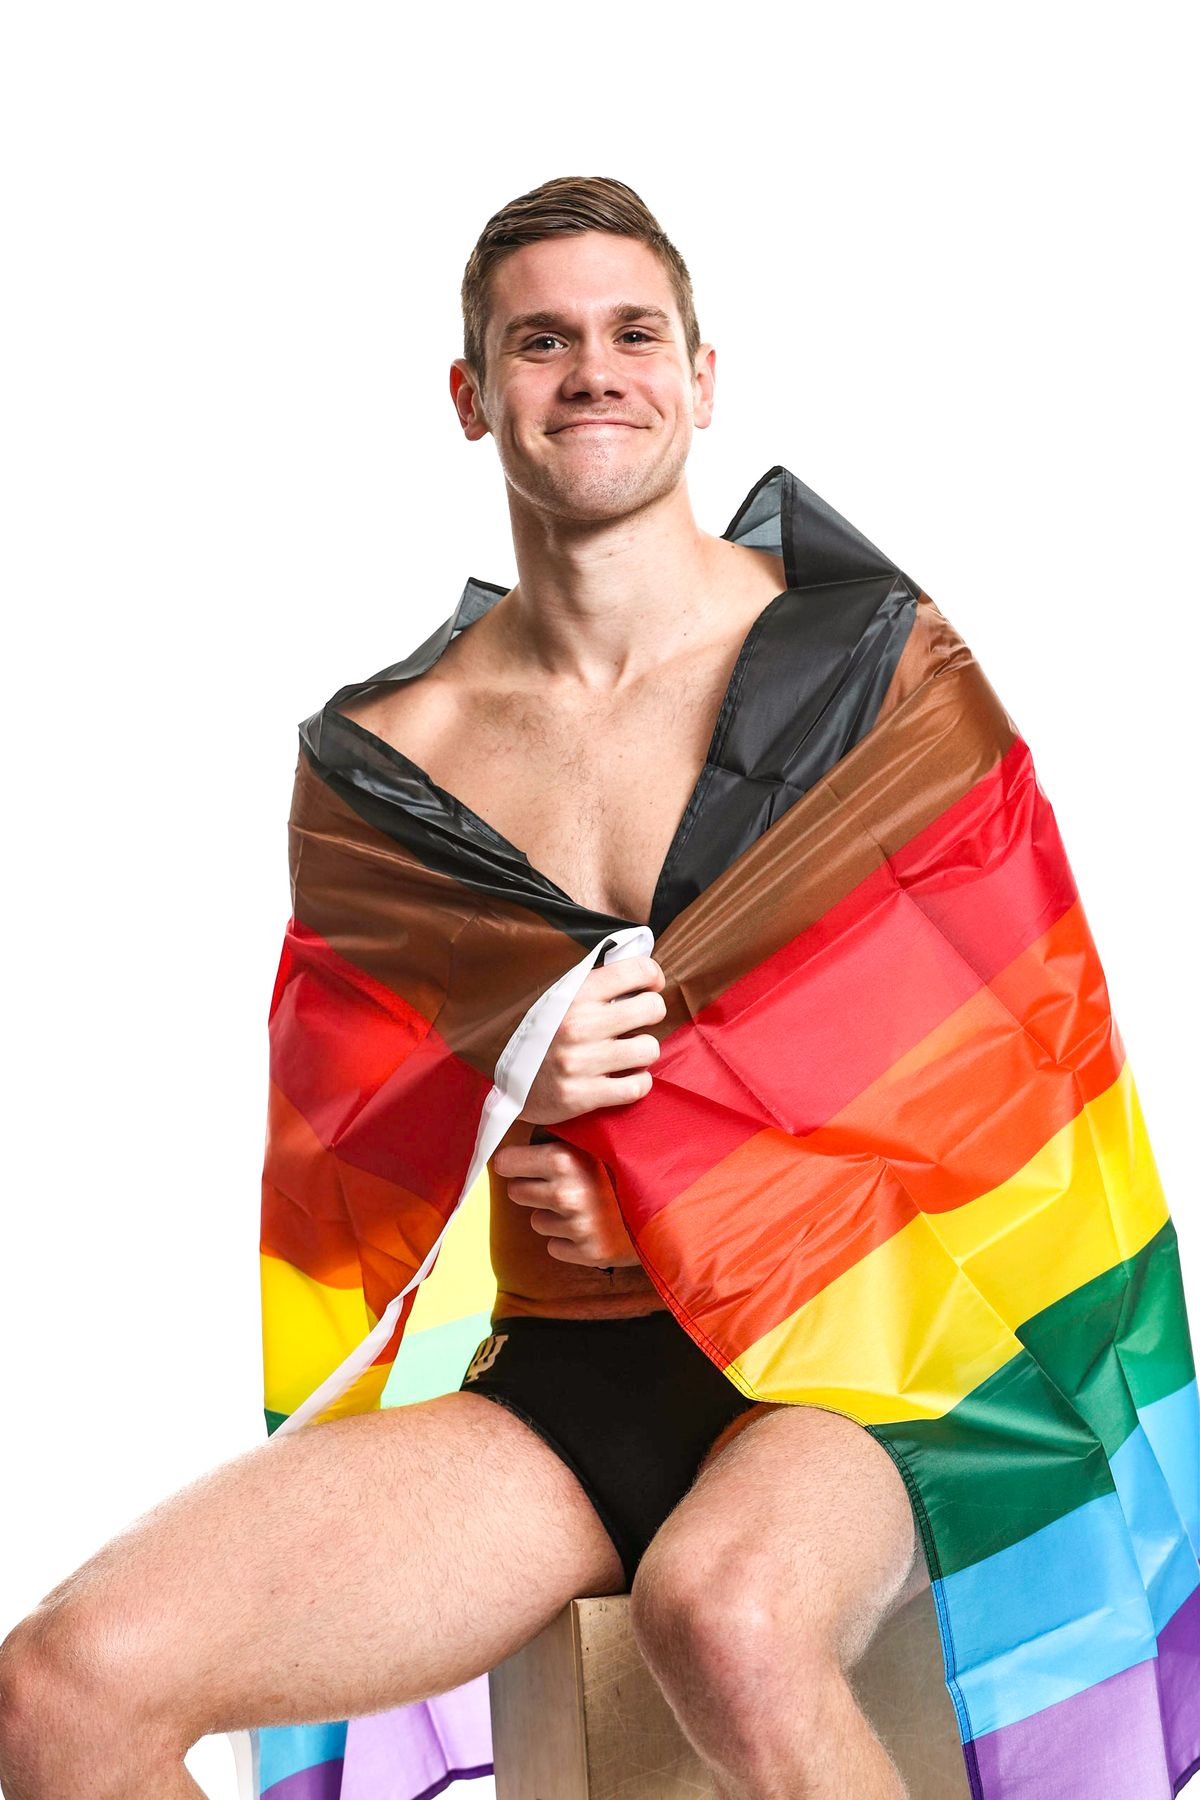 Thomas Vanderbrook wrapped in a rainbow flag.